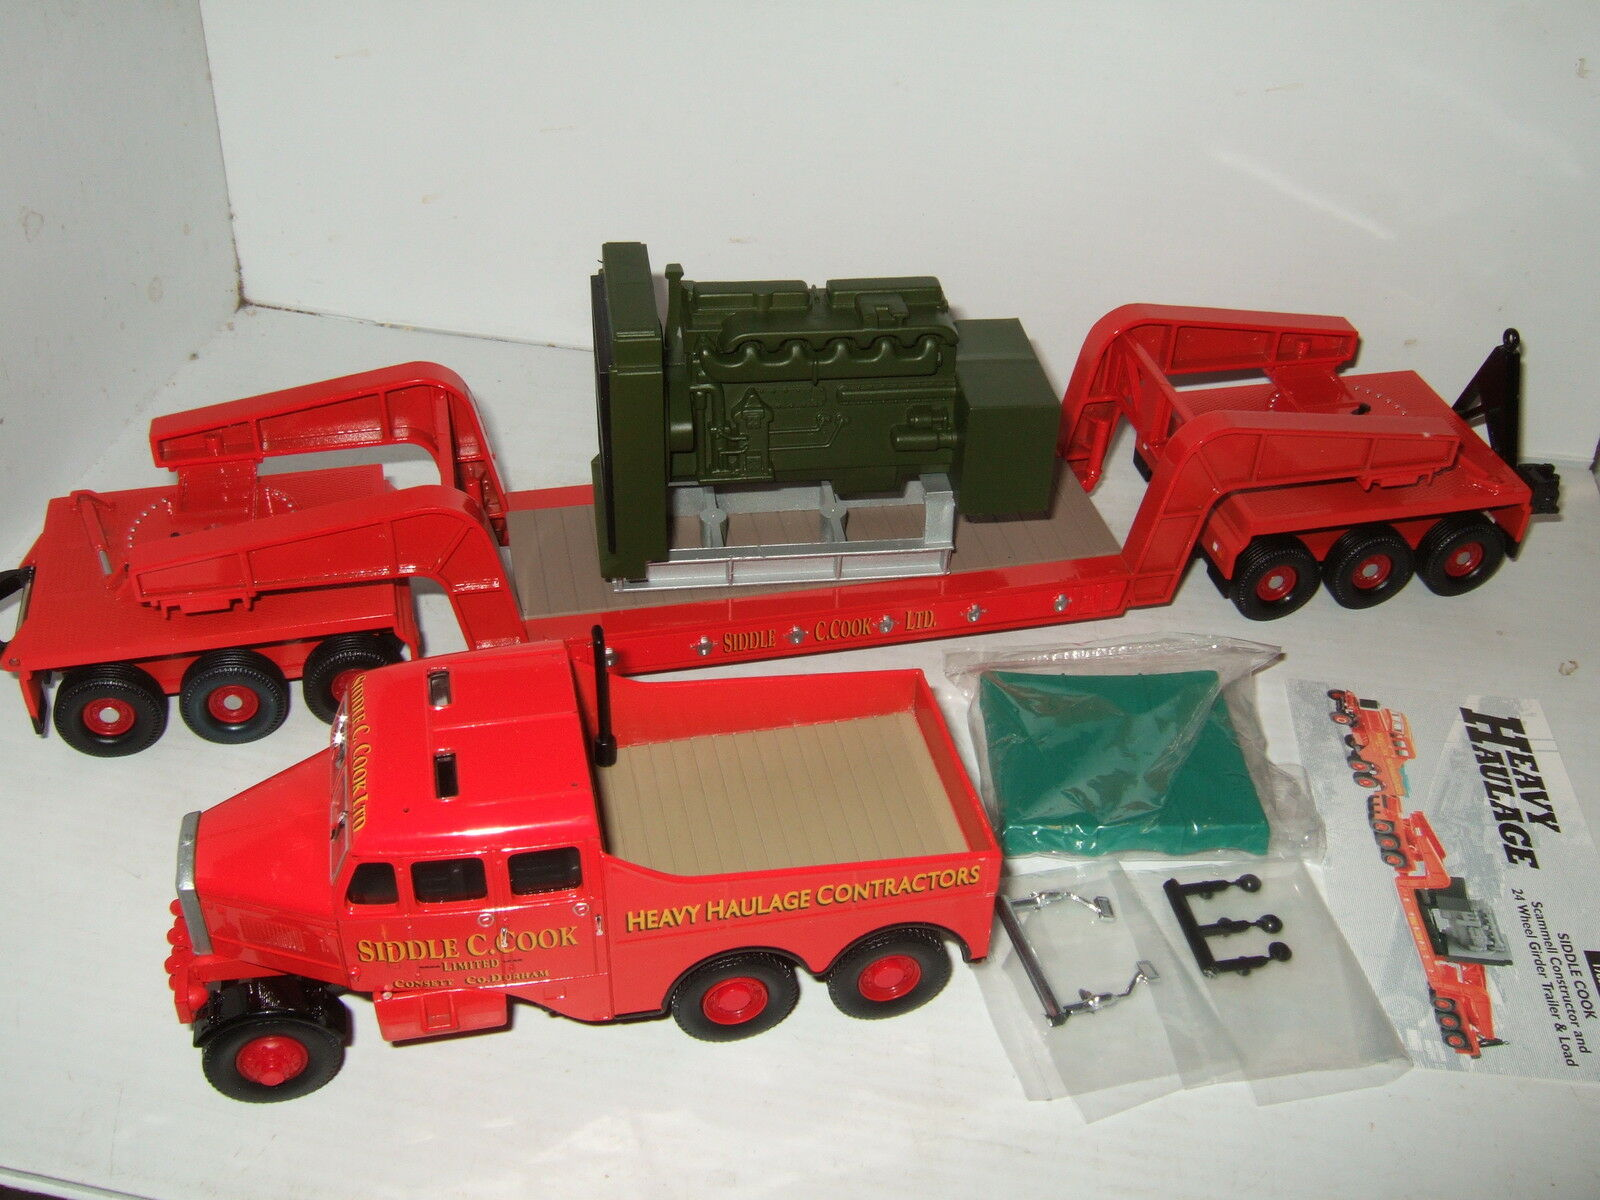 Corgi 17603 Heavy Haul Scammell Constructor + 24 Wheel Girder + Load Siddle Cook